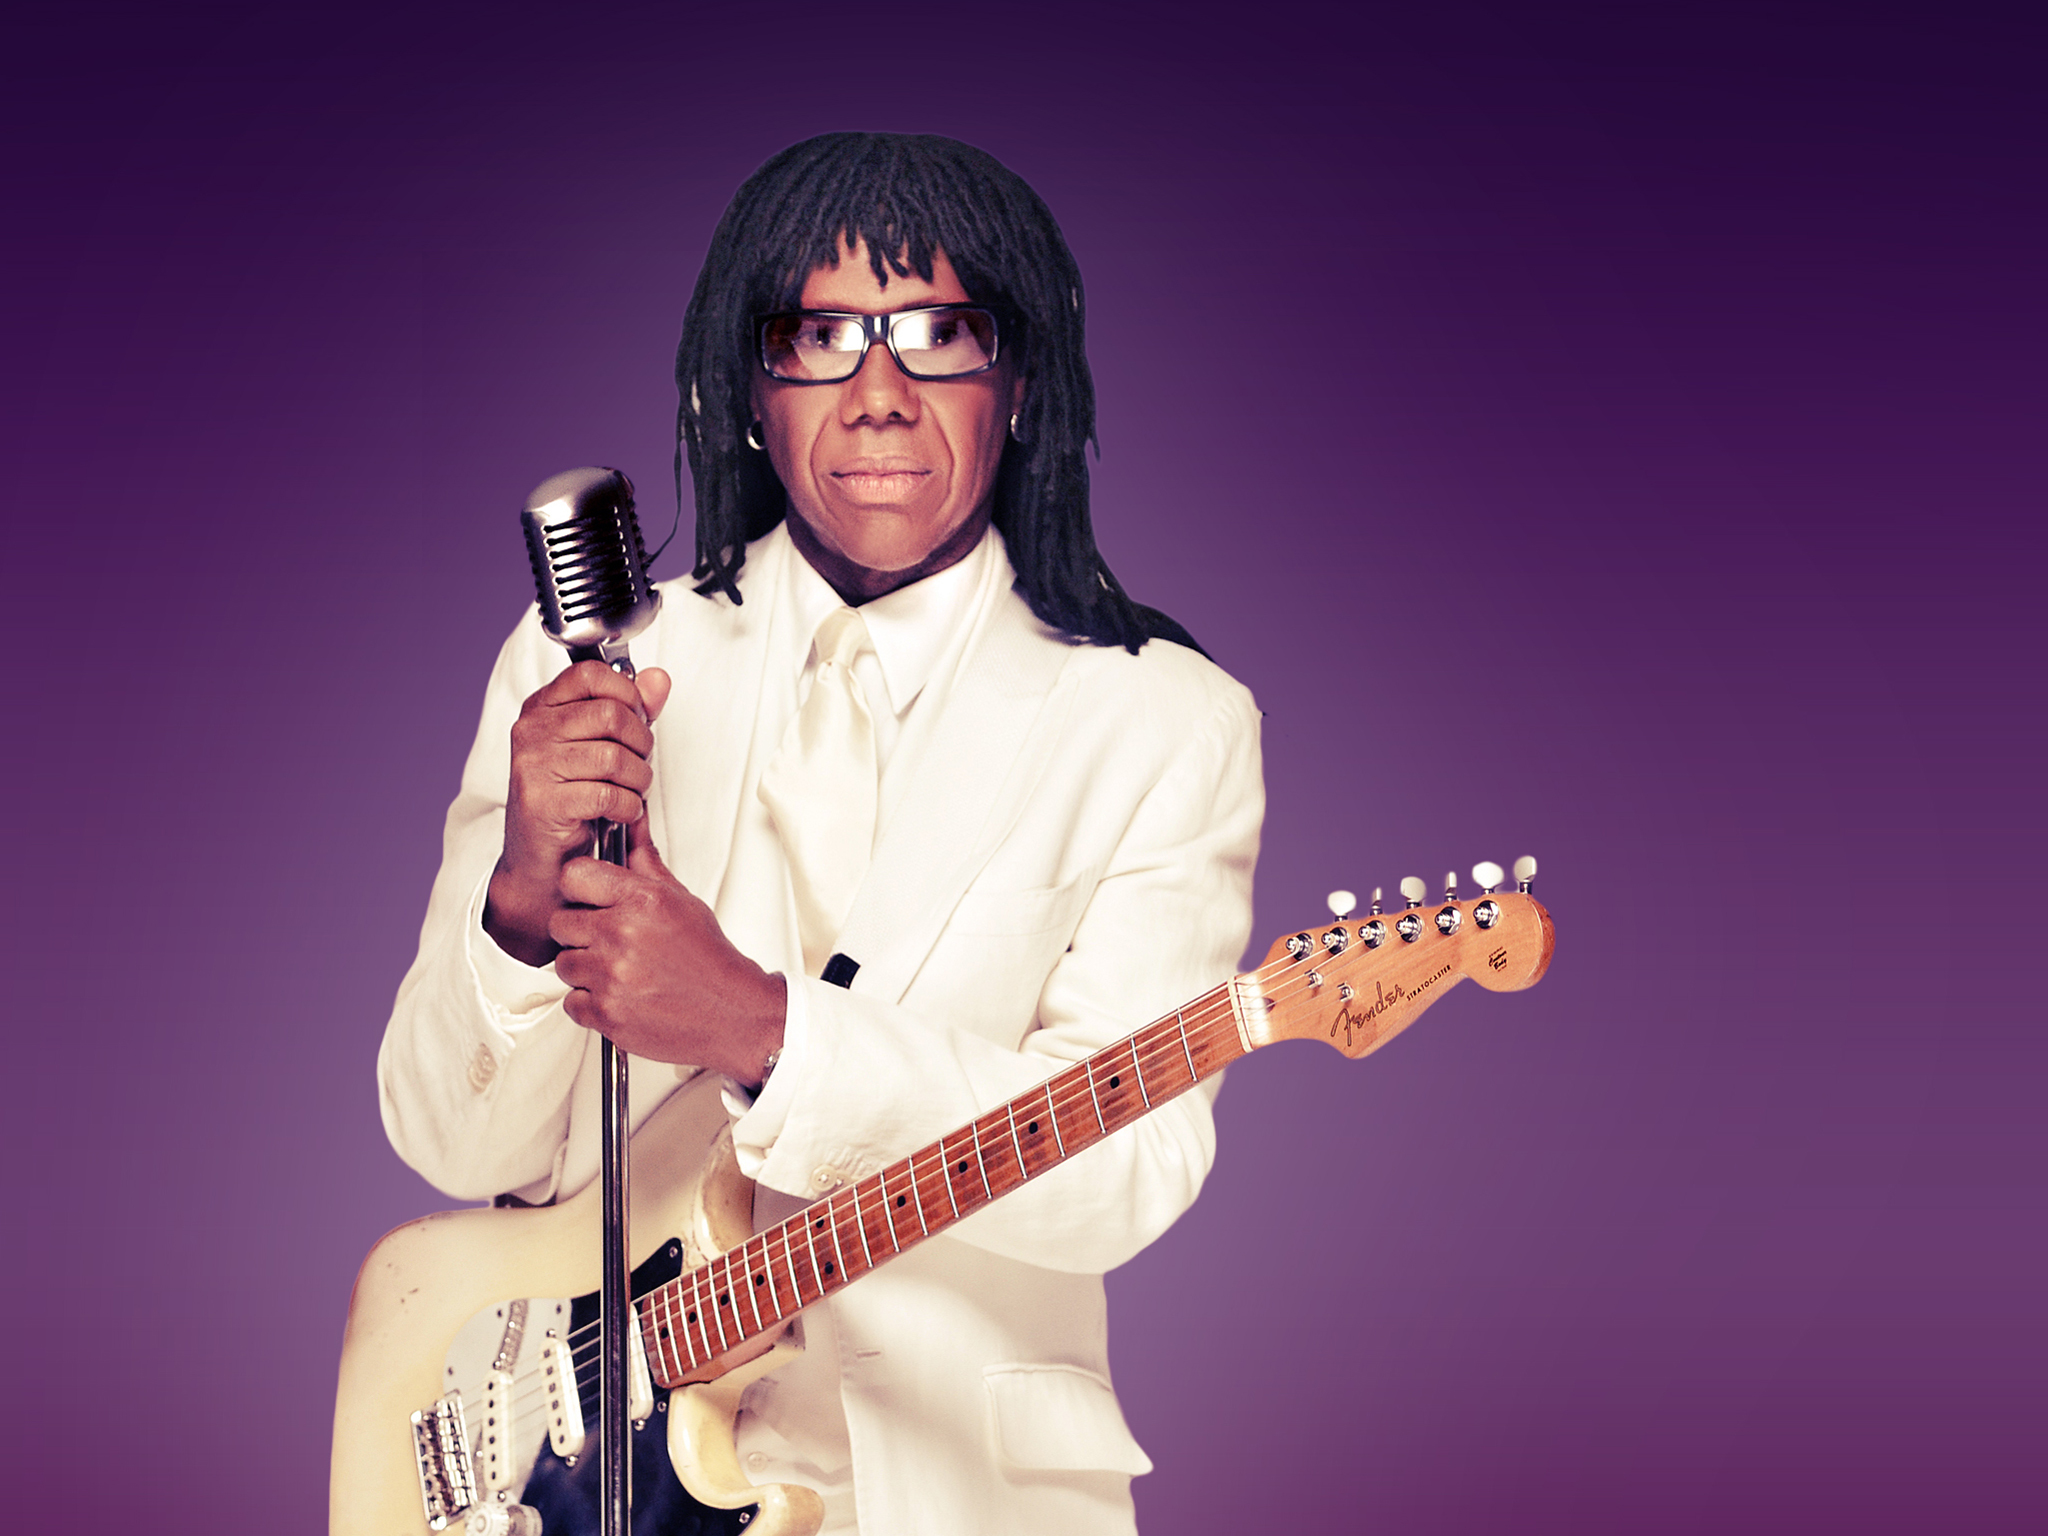 Nile Rodgers's Meltdown gets even hotter with a second wave of line-up announcements